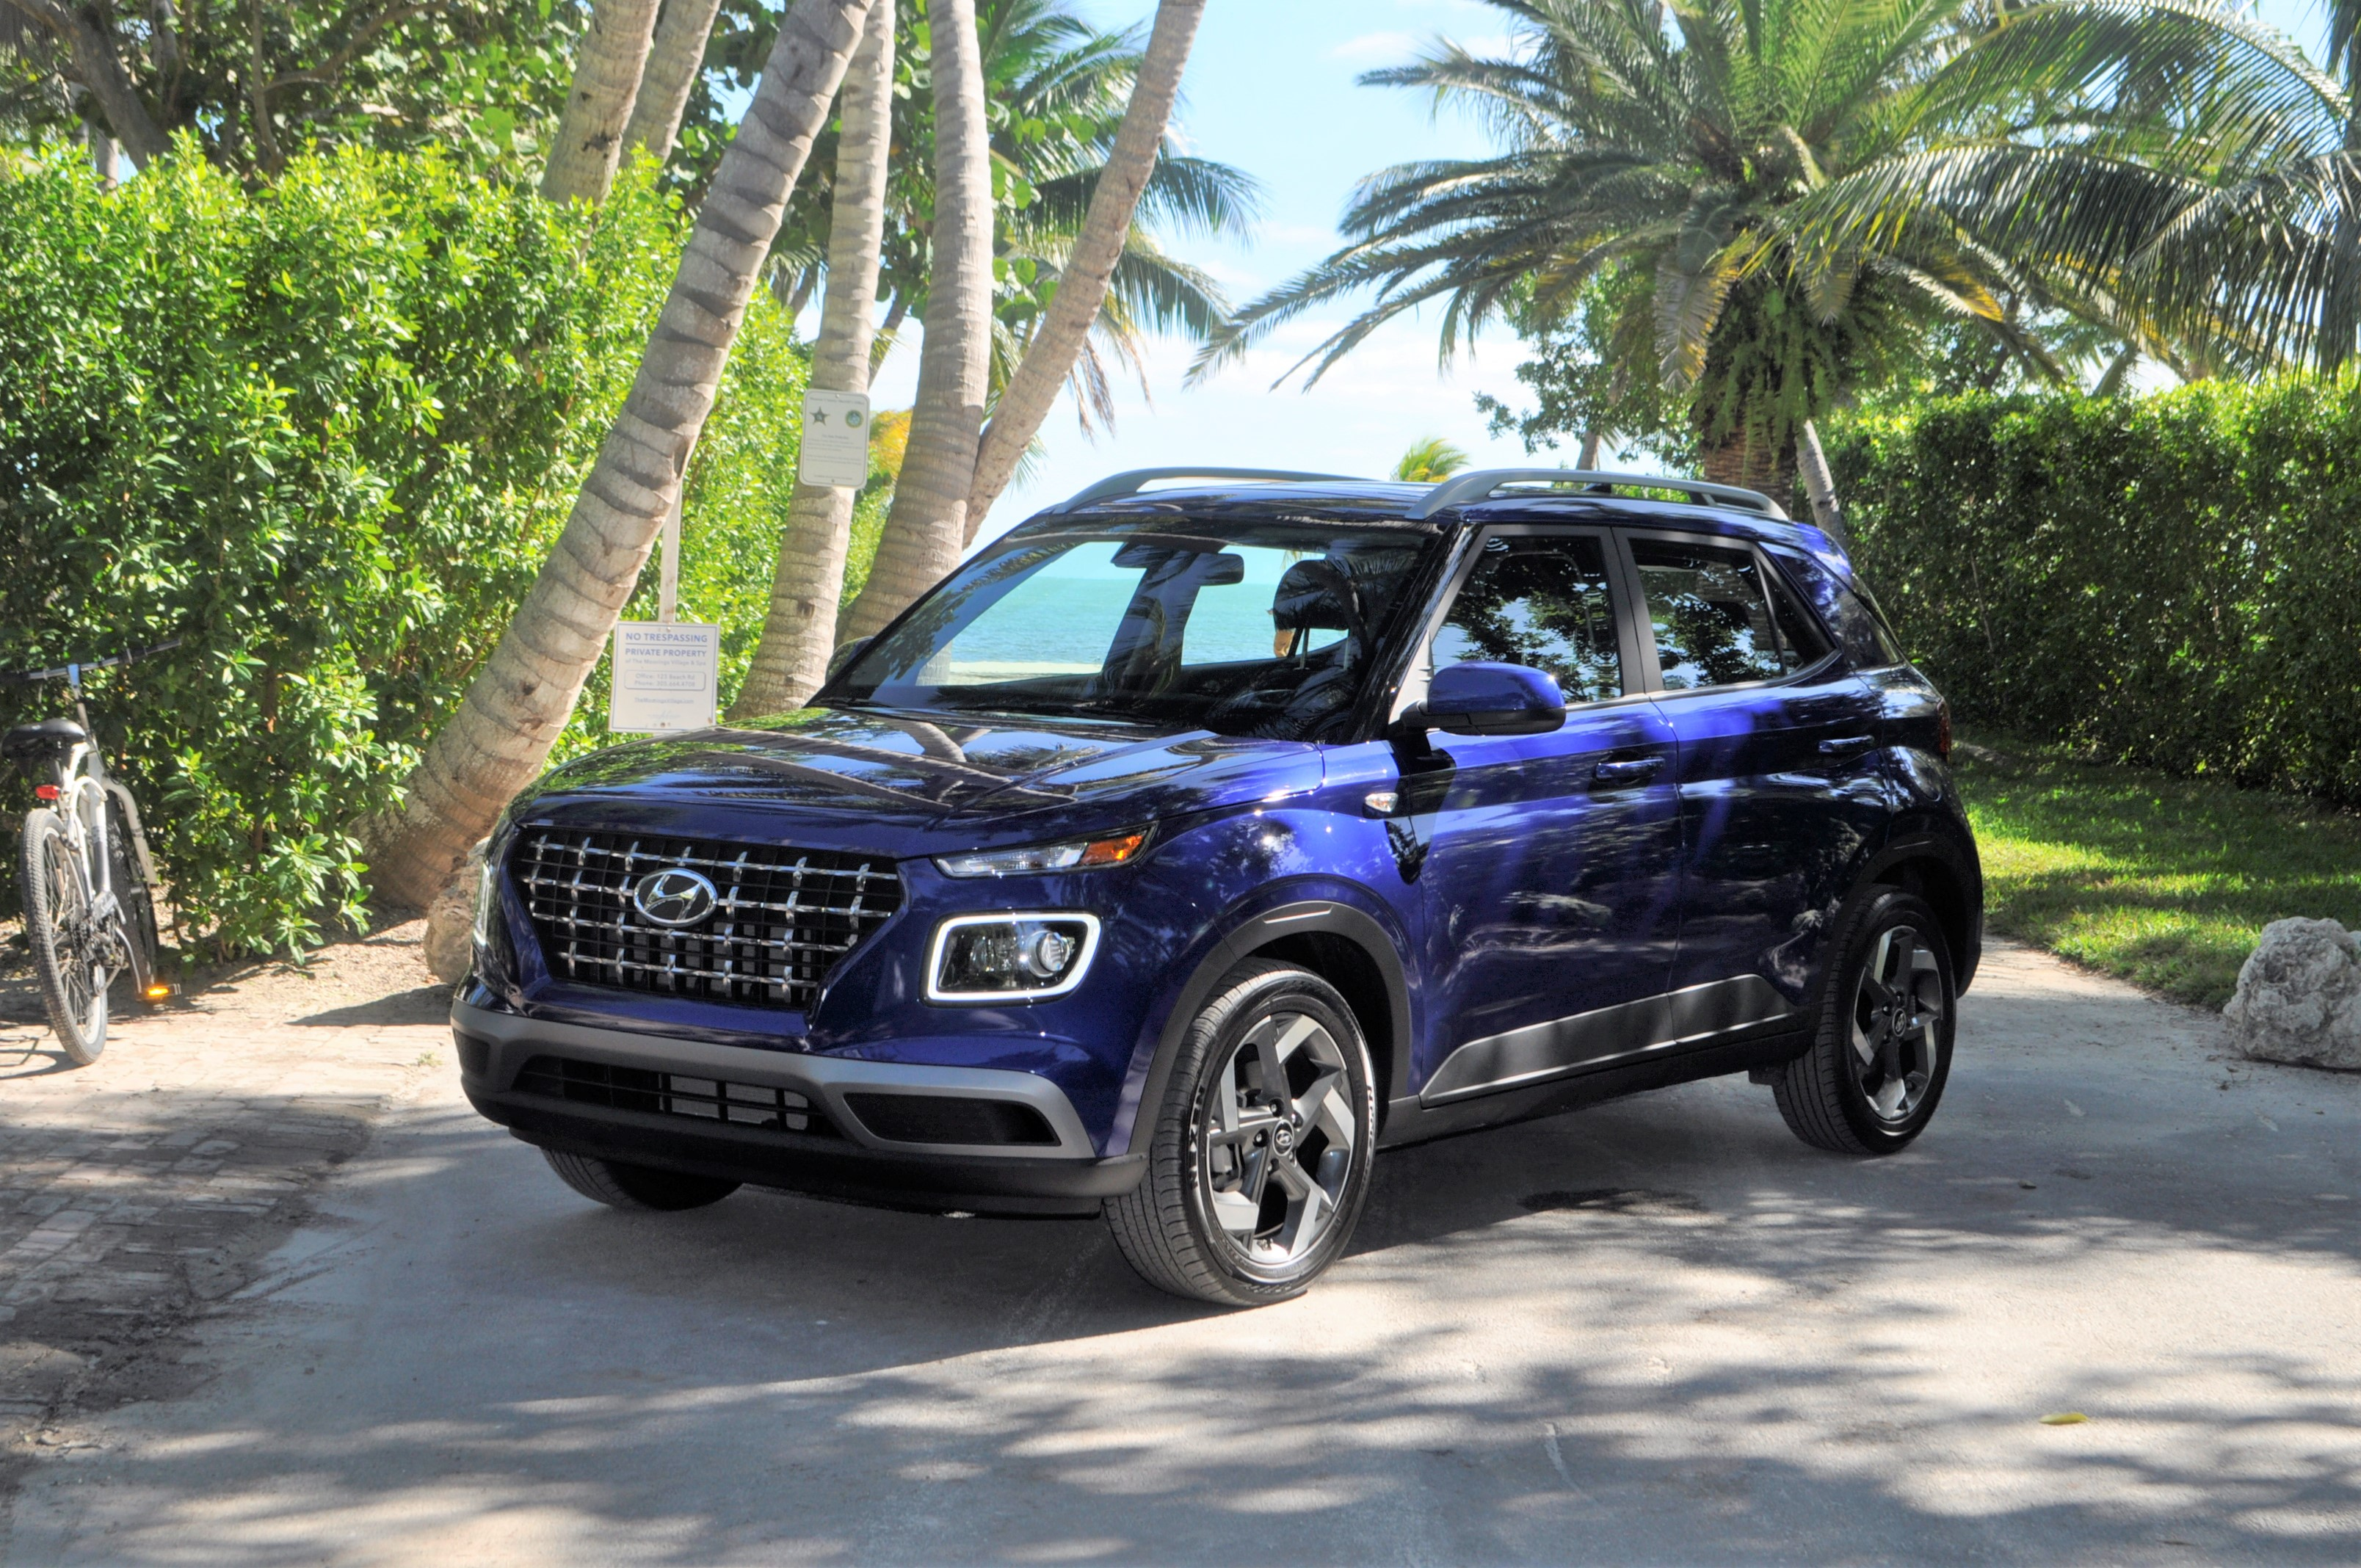 2020 hyundai venue review, pricing, and specifications